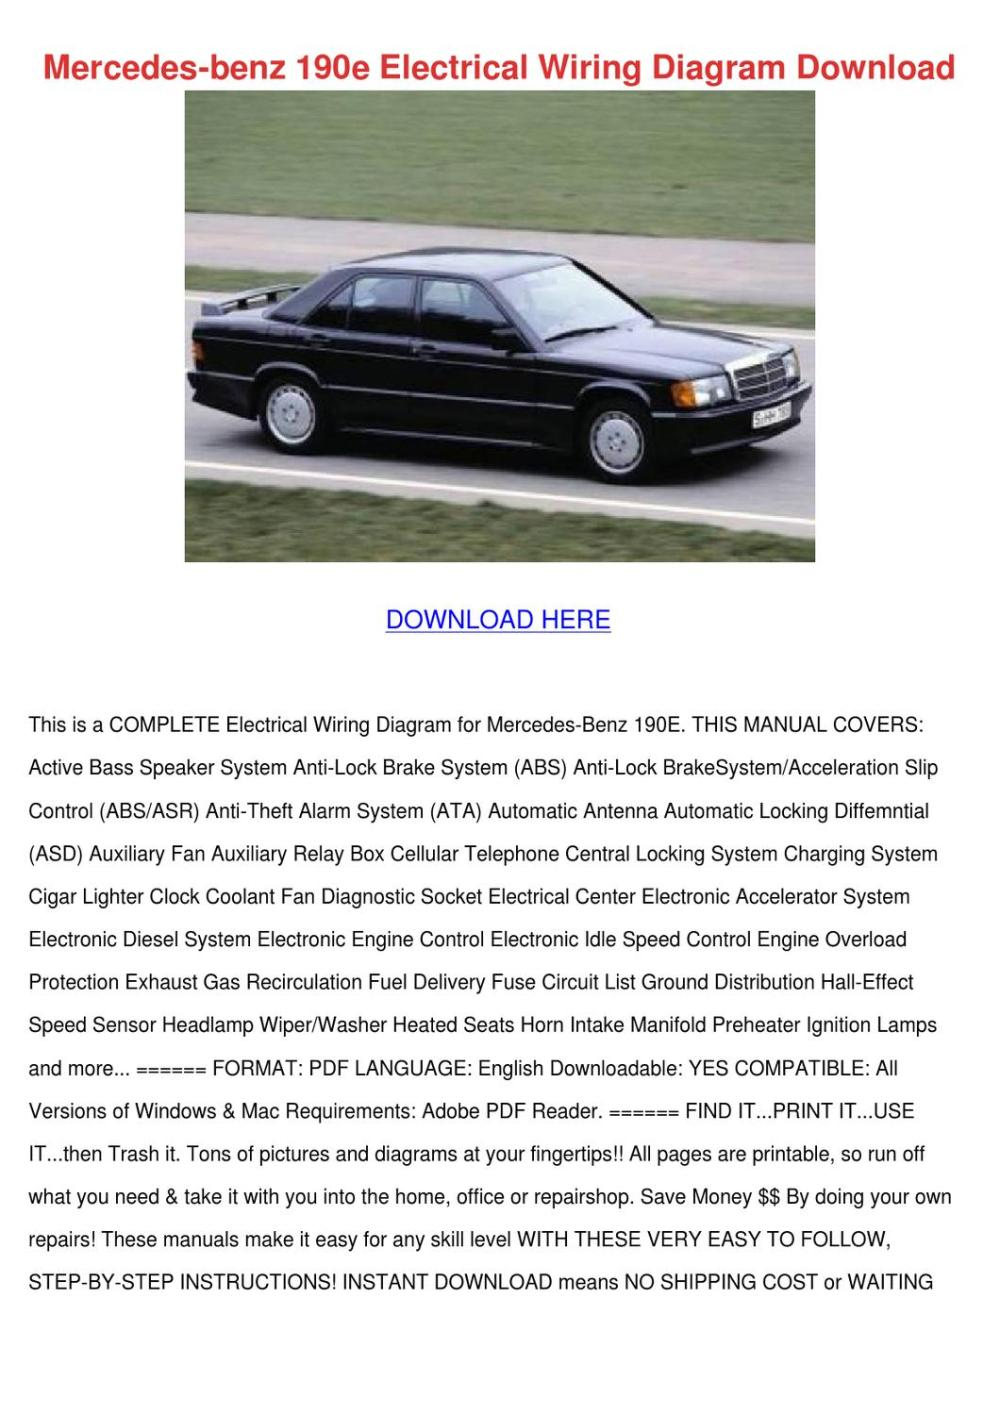 medium resolution of mercedes benz 190e electrical wiring diagram by arleneadam issuu